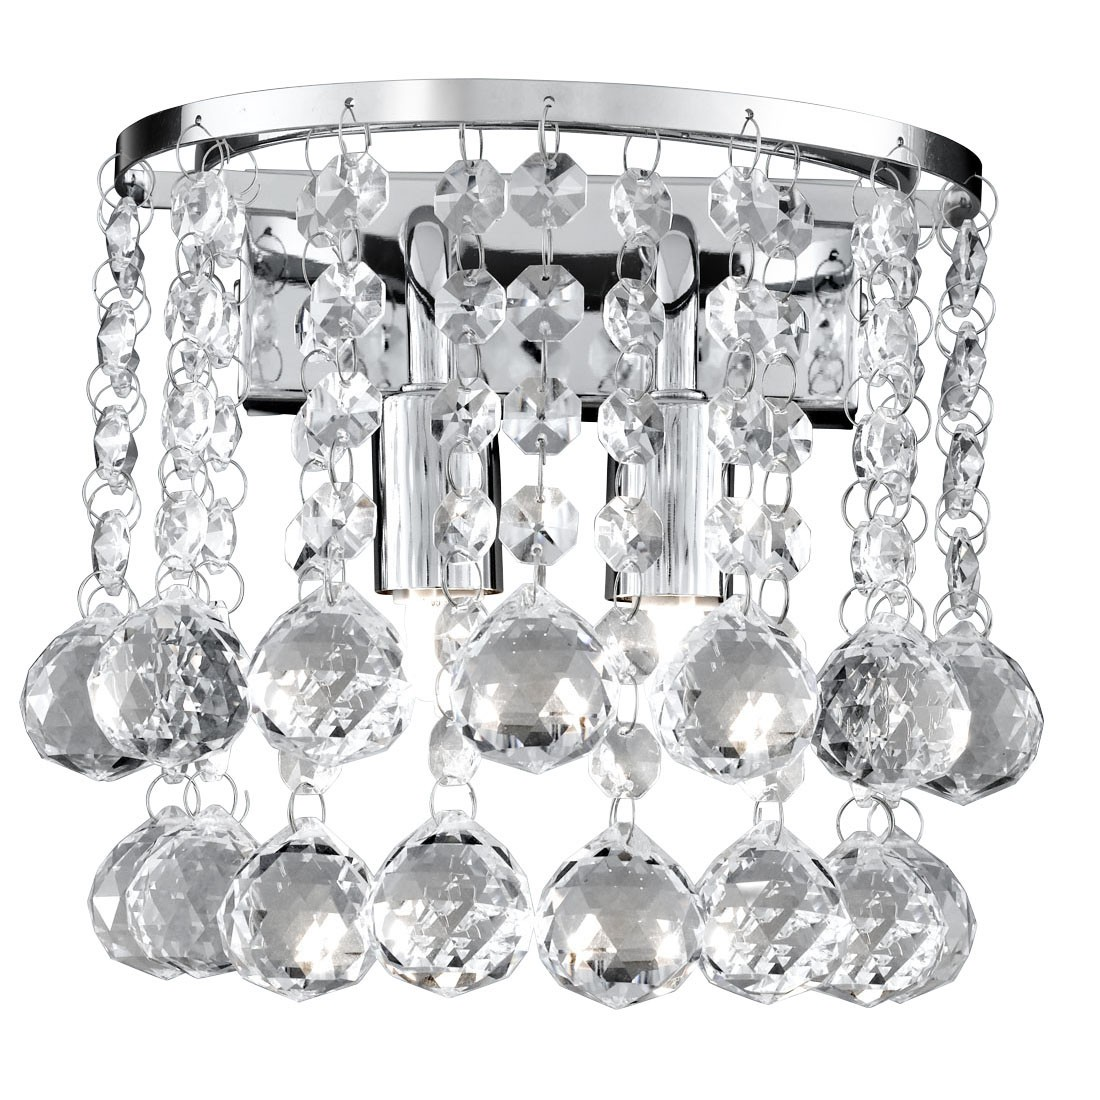 Round Crystal Wall Lights : Crystal wall lights Product categories Stanways Stoves and Lights